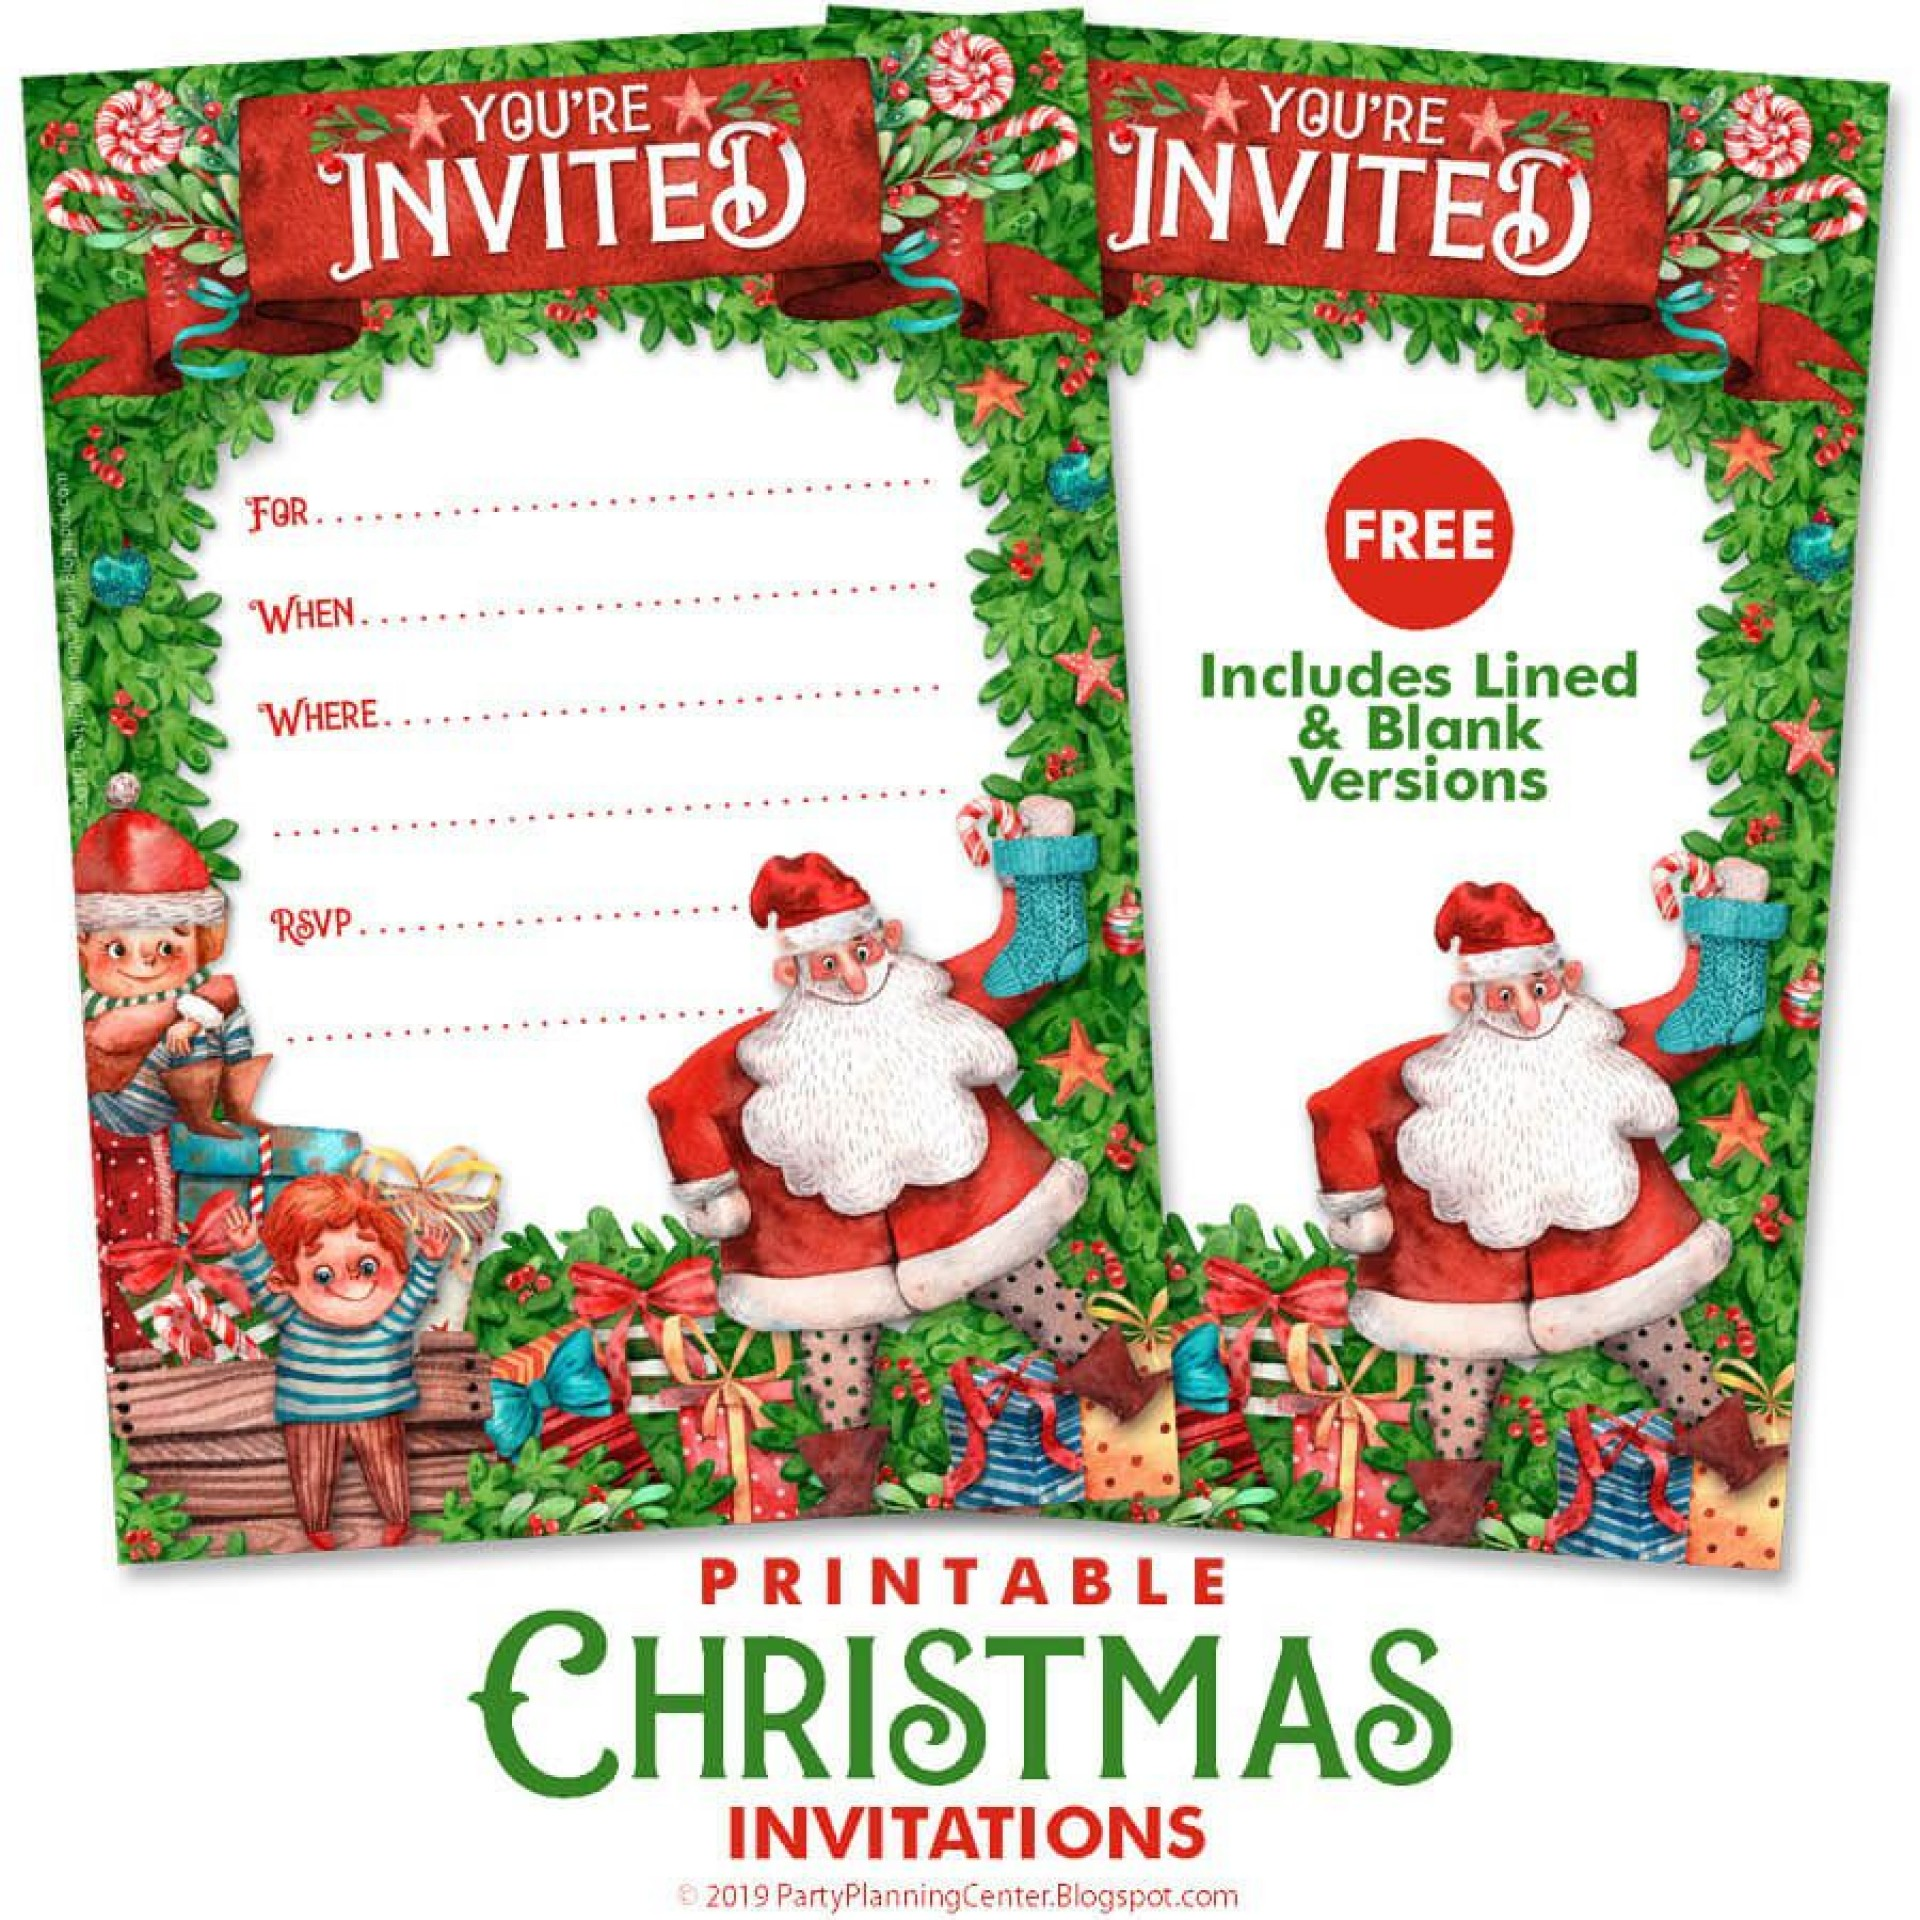 007 Dreaded Christma Party Flyer Template Free Image  Company Invitation Printable Word1920